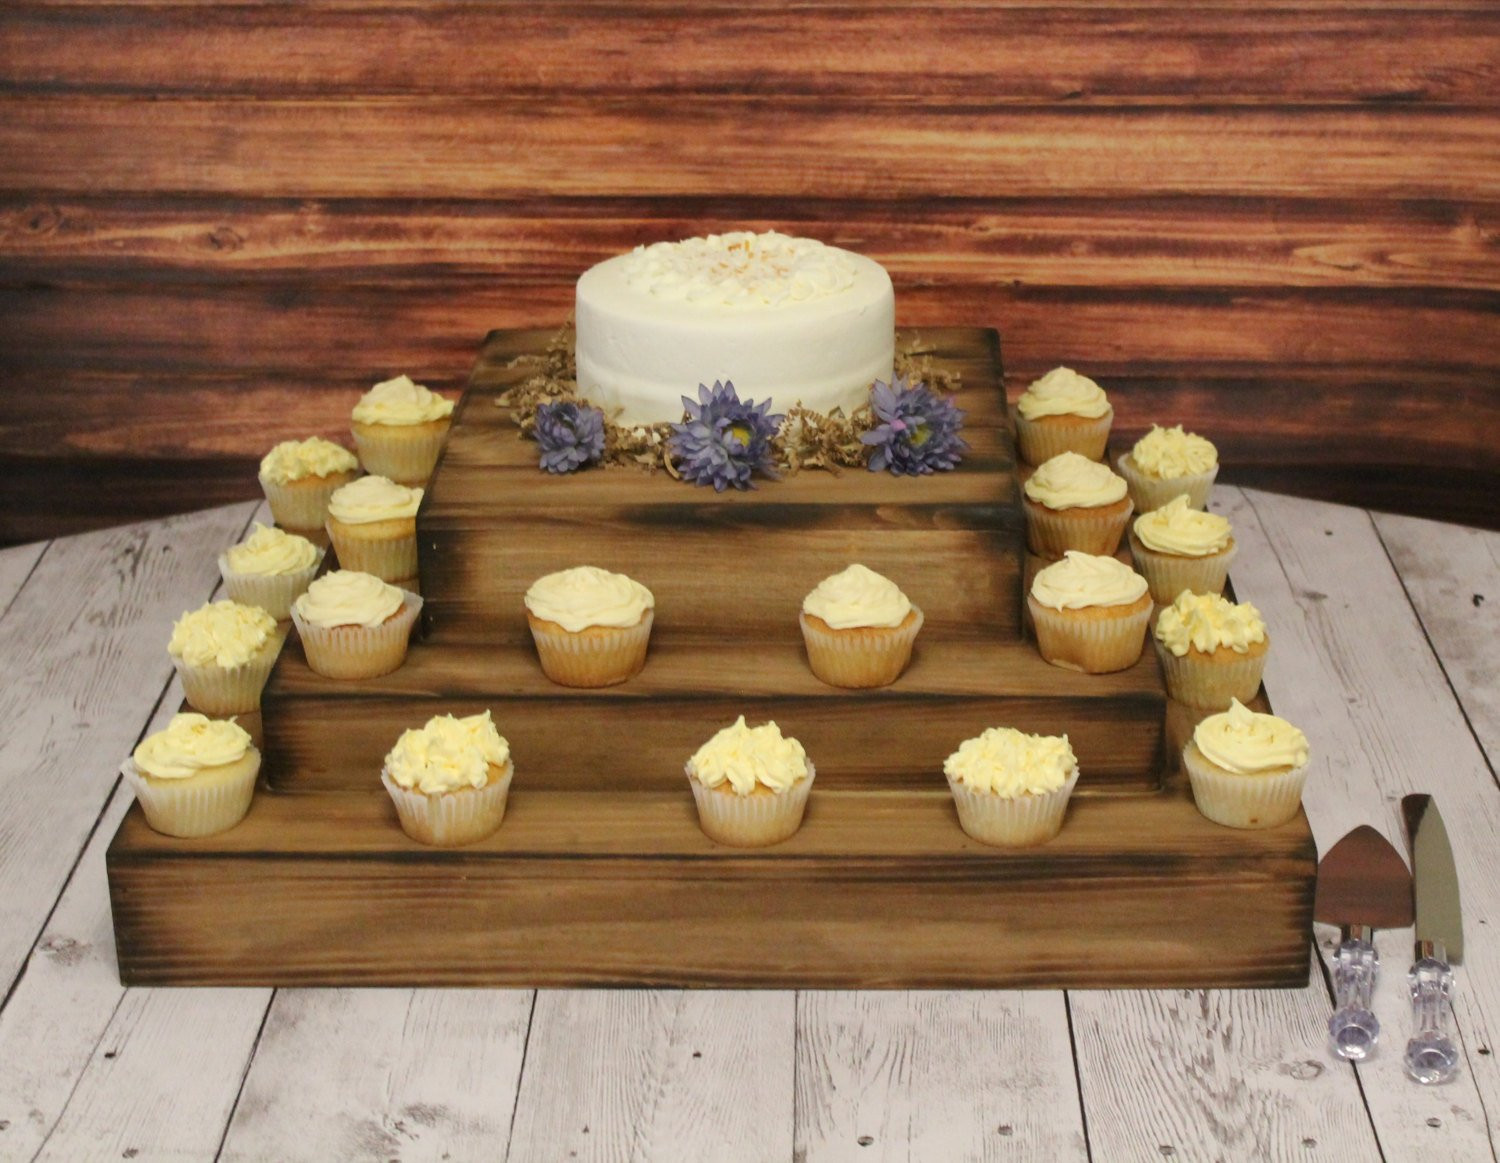 Wedding Cake Stands For Cupcakes  Wedding Wooden Cake and Cupcake Stand Square Riser Bases